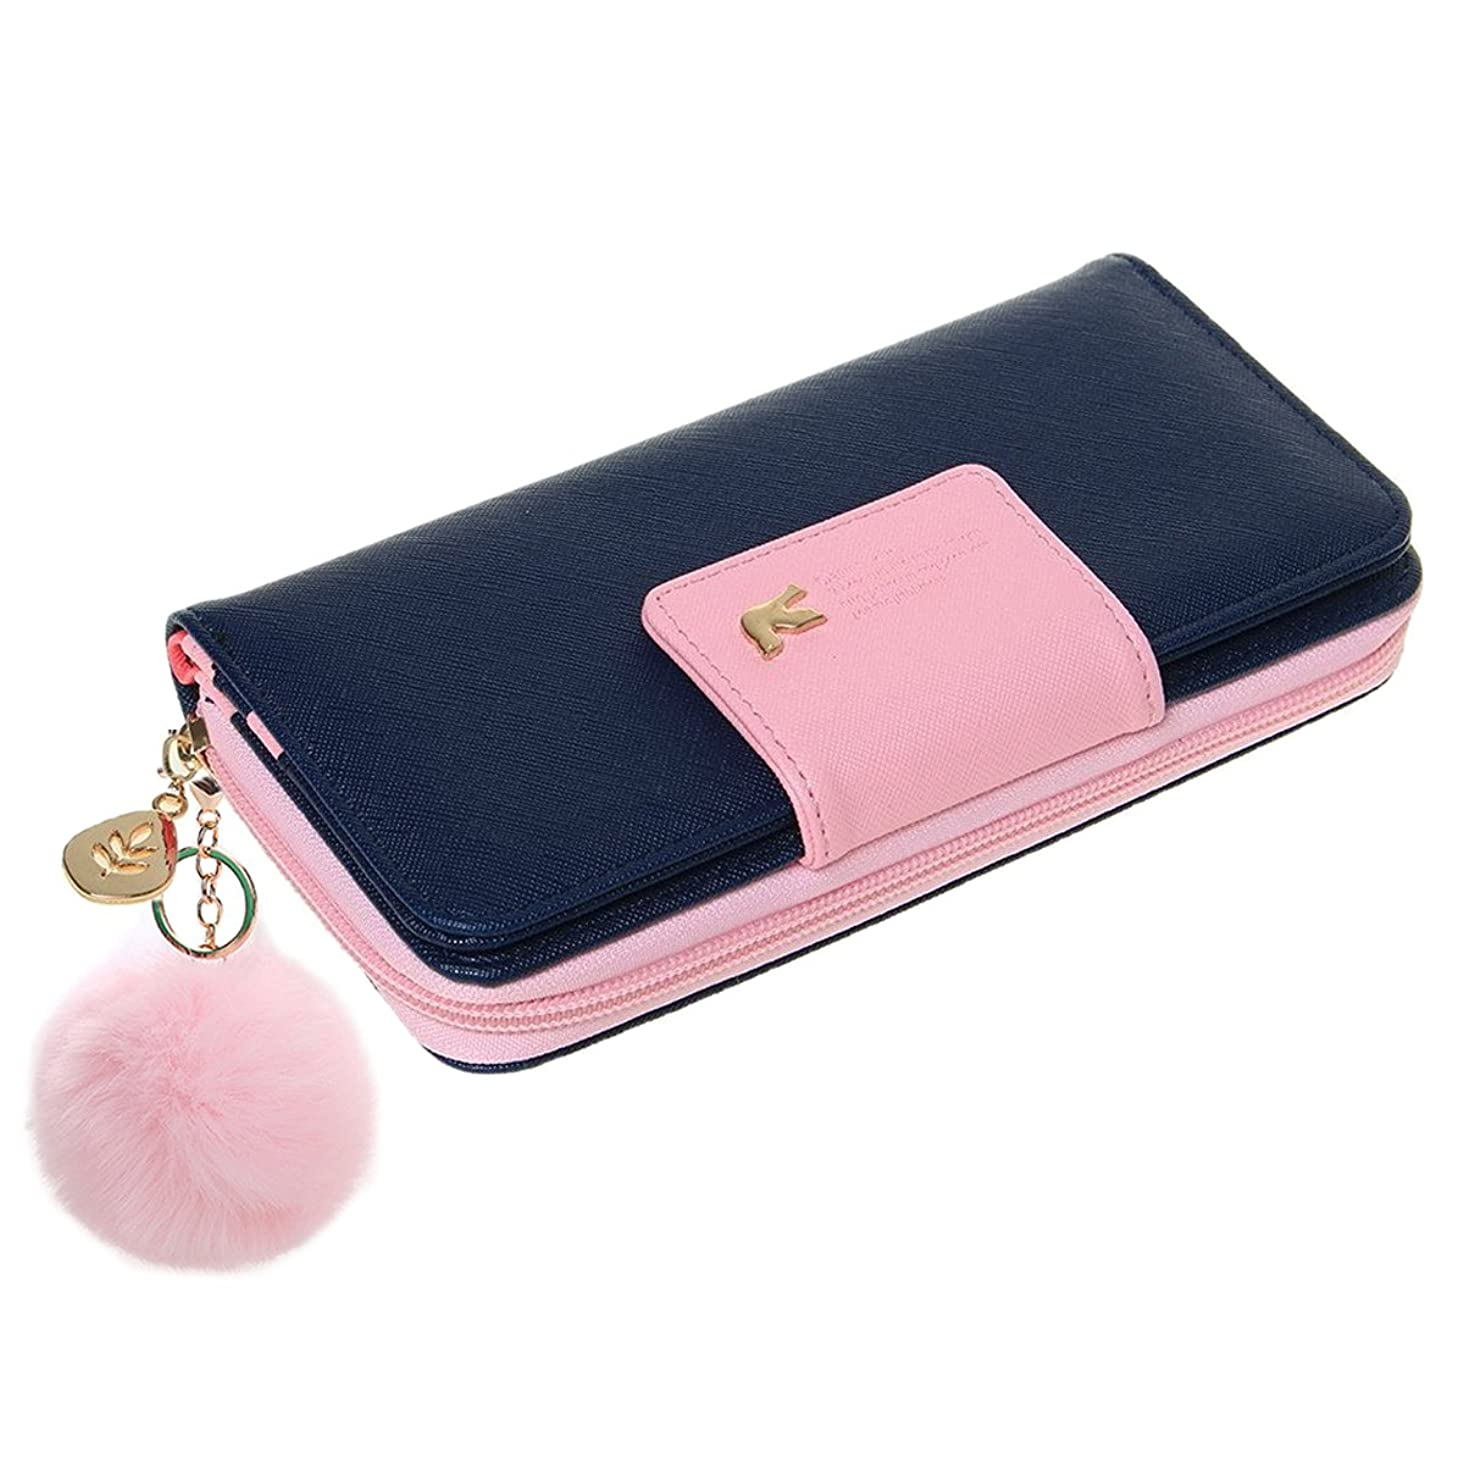 Wallet-NEWANIMA Women Multi-card Two Fold Long Zipper Clutch Purse